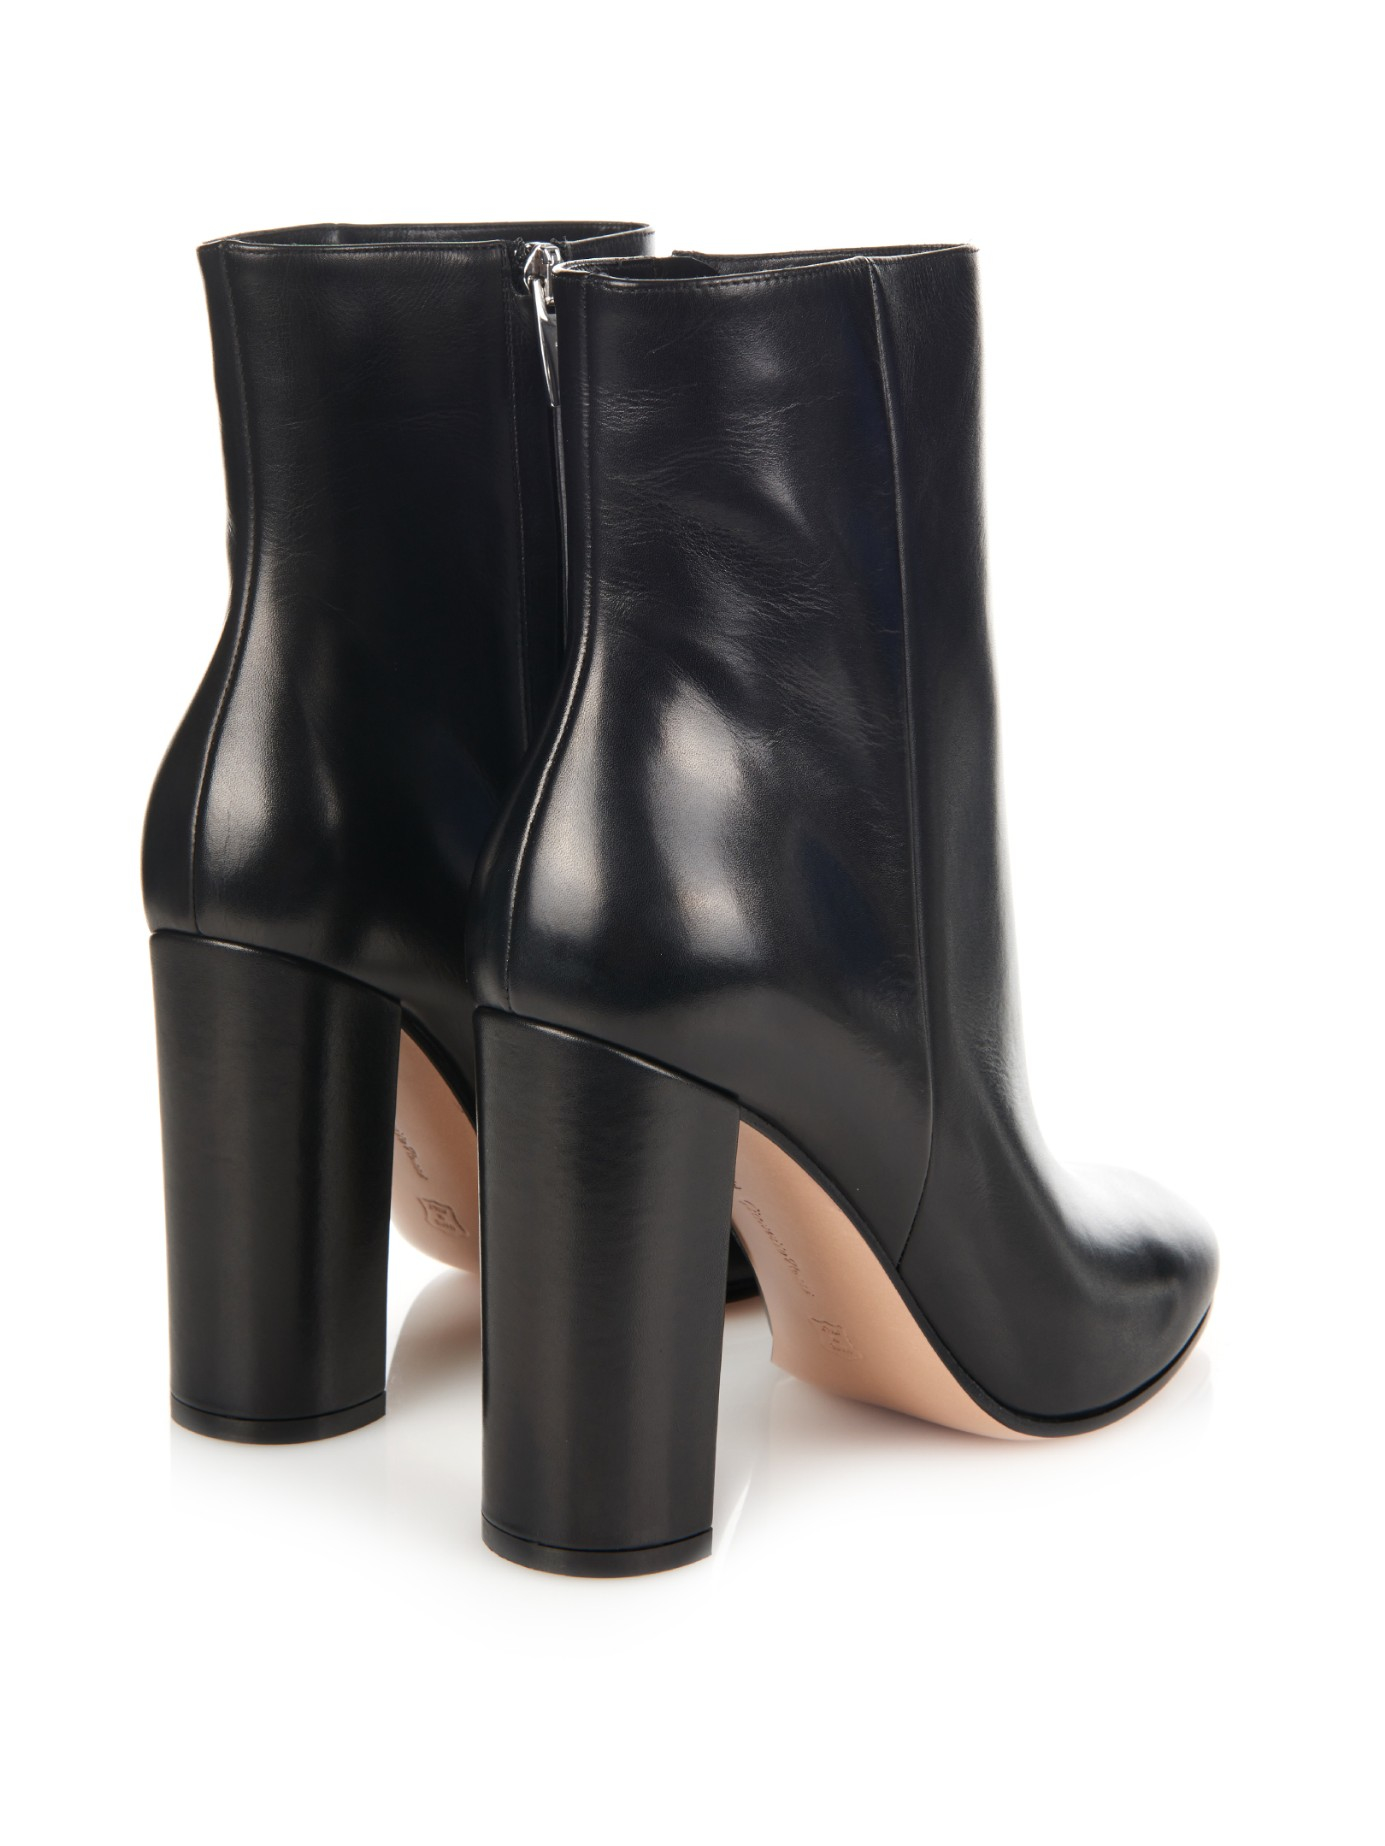 Gianvito rossi Rolling Leather Ankle Boots in Black | Lyst